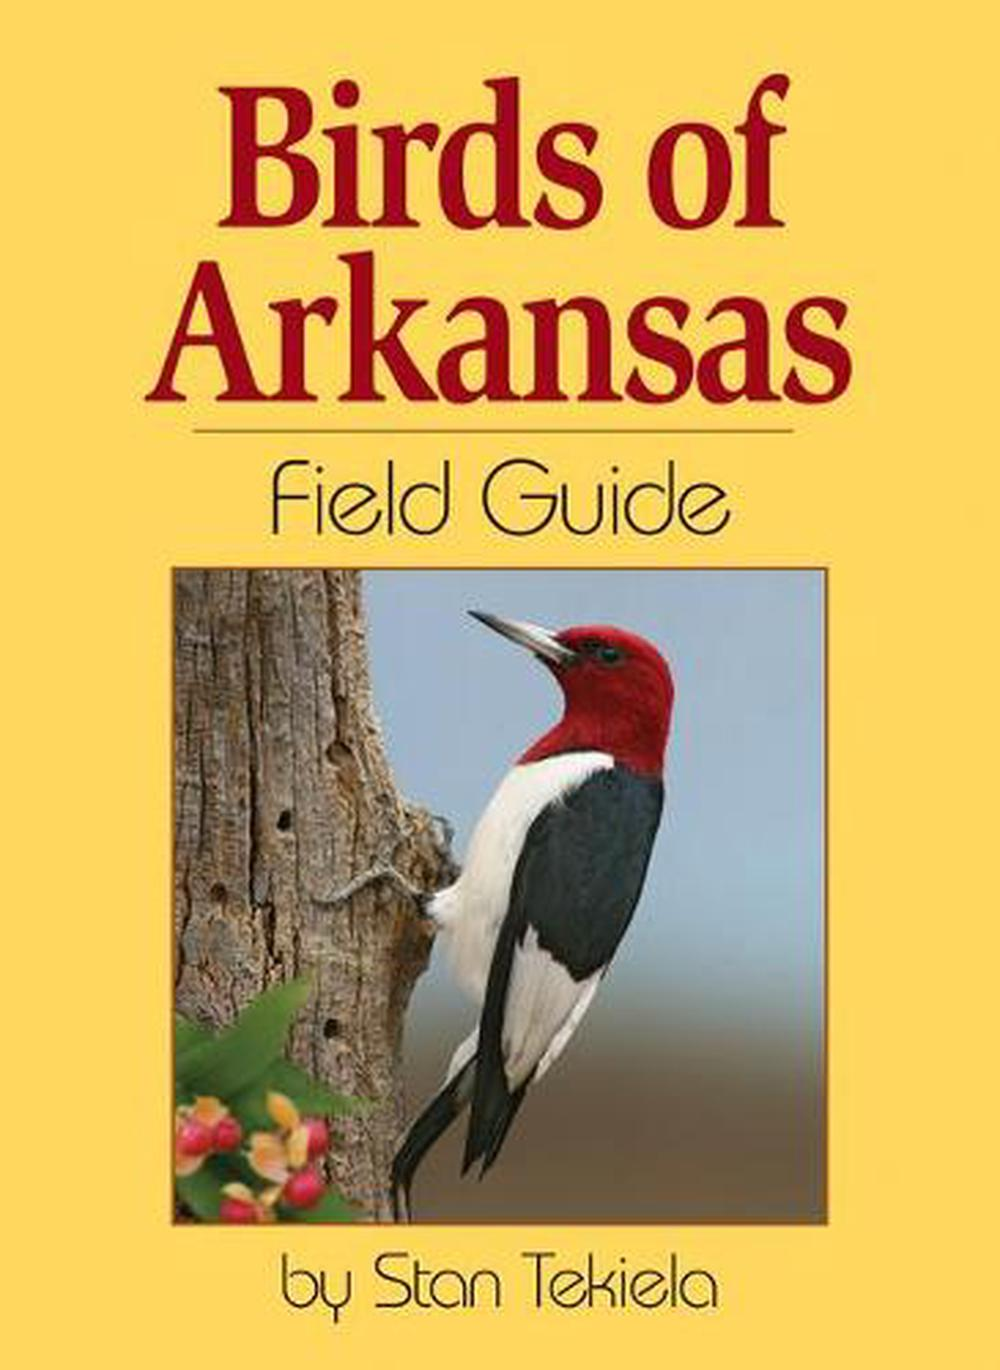 Birds of arkansas field guide by stan tekiela (english) paperback.